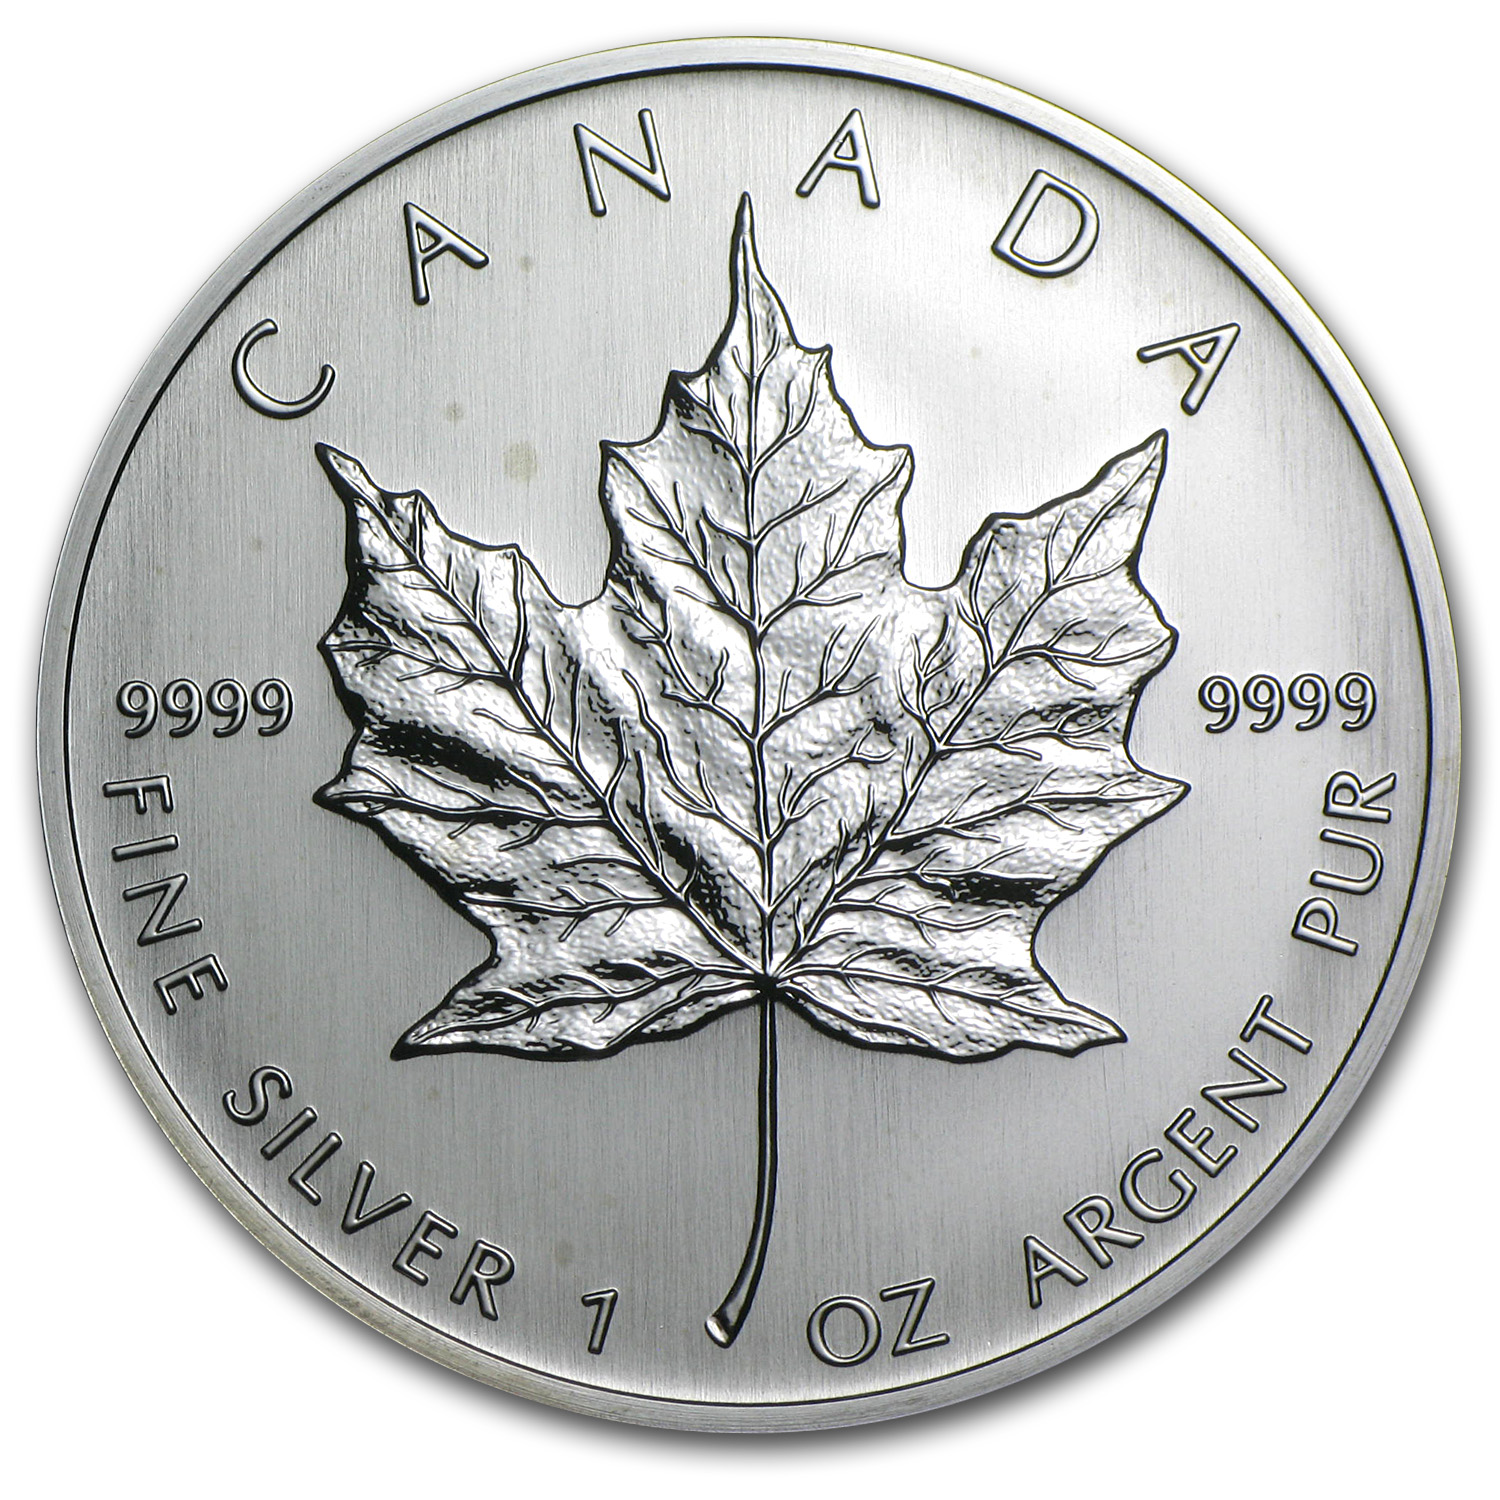 2004 1 oz Silver Canadian Maple Leaf BU